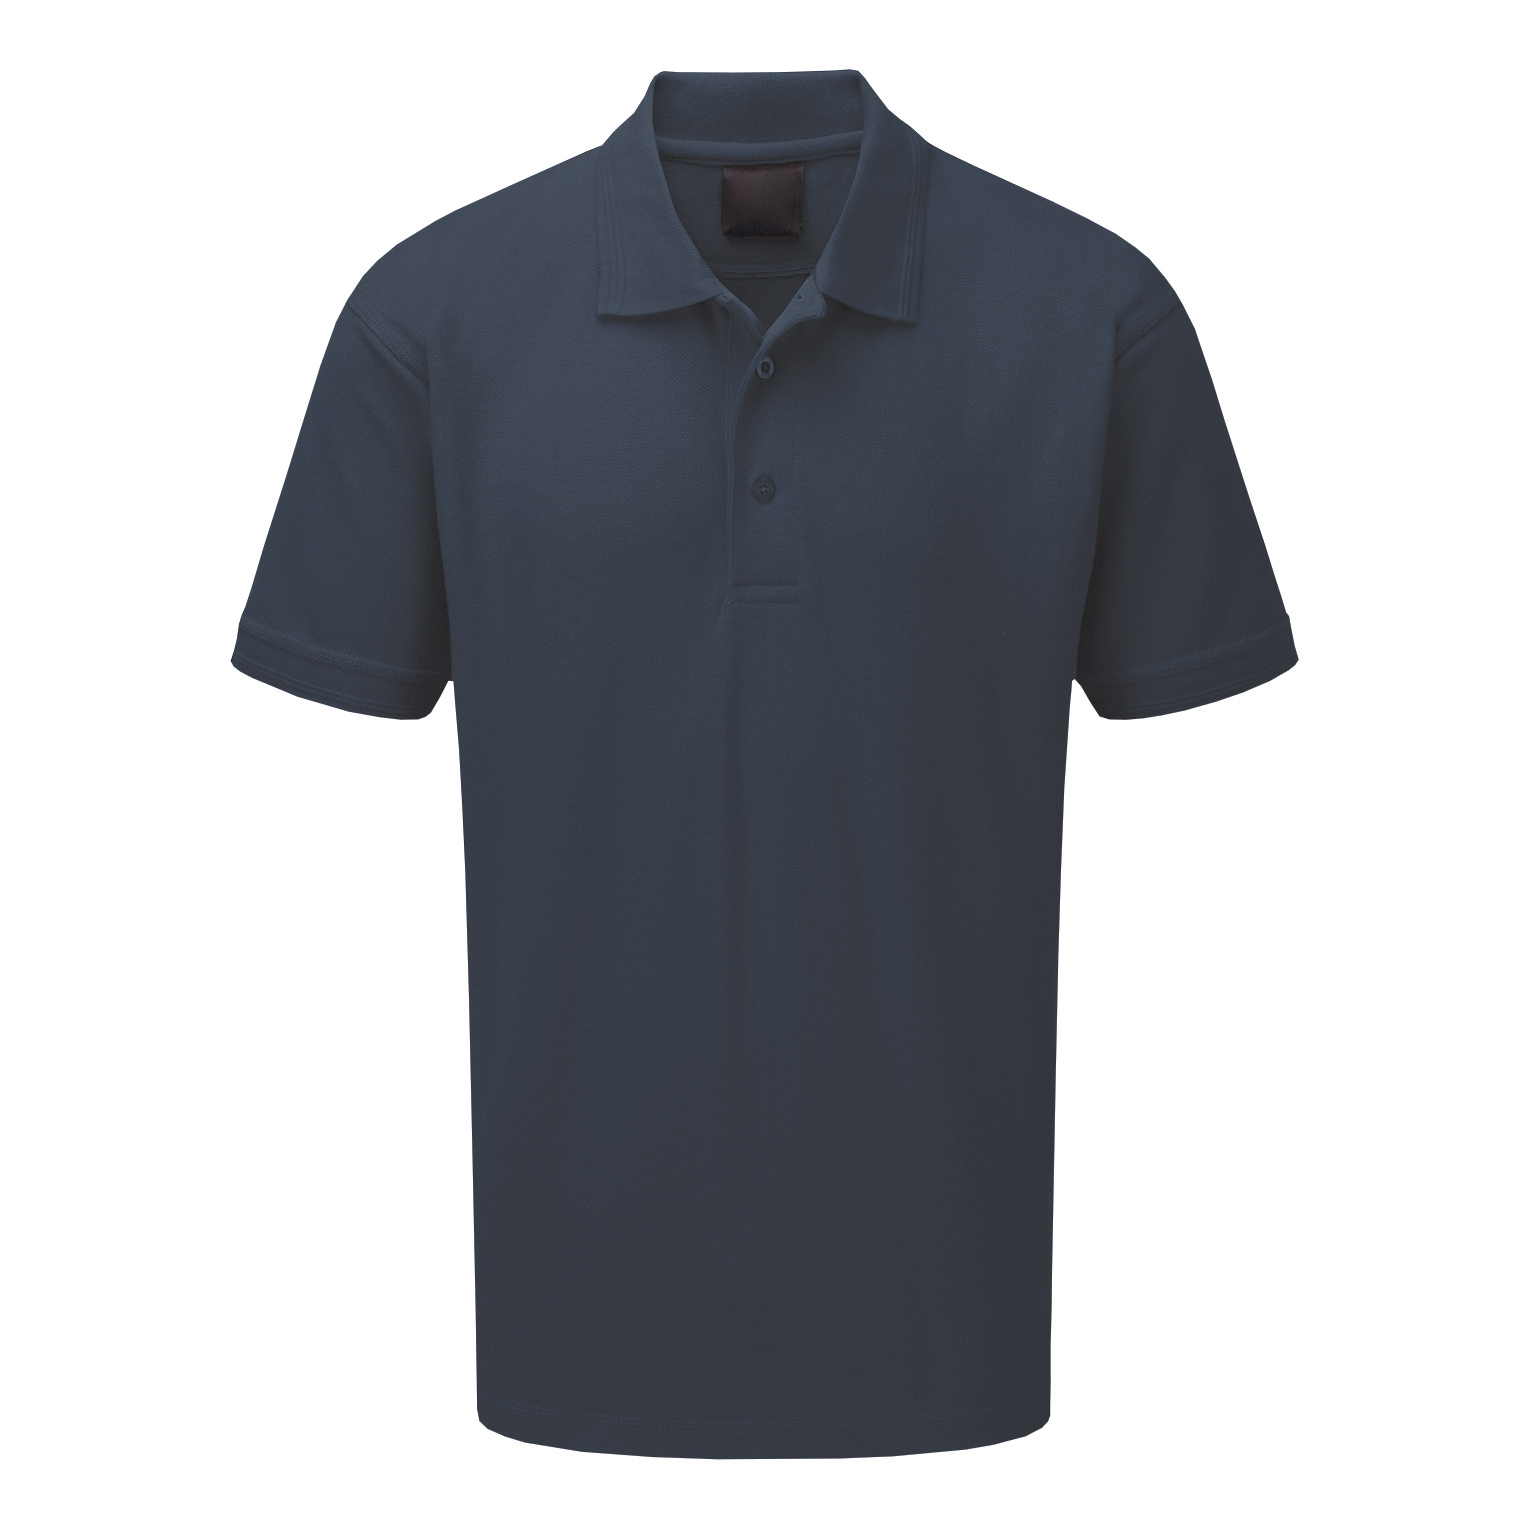 Premium Polo Triple Stitched 220gsm XL Graphite